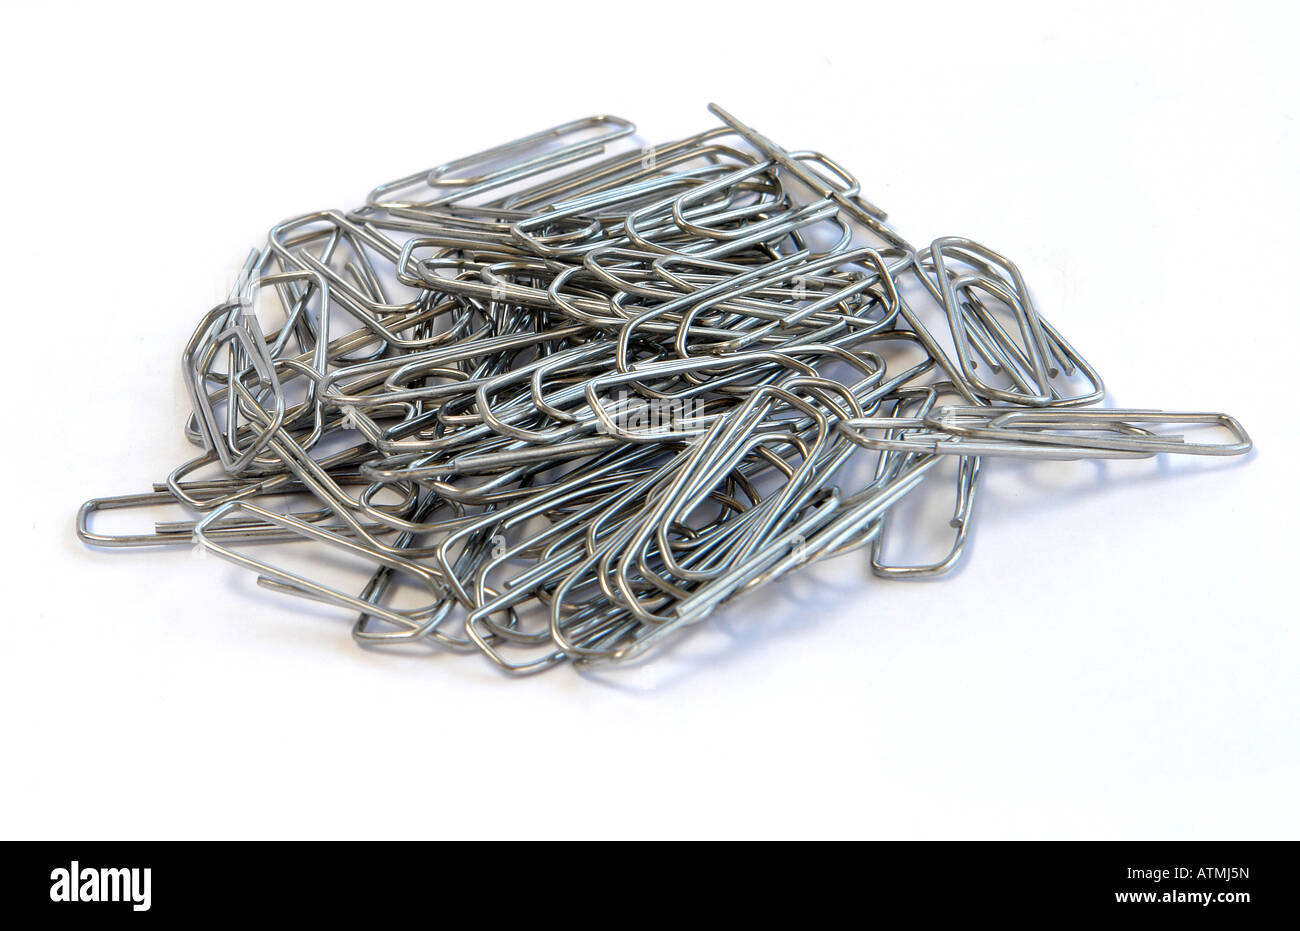 Paperclips - Stock Image